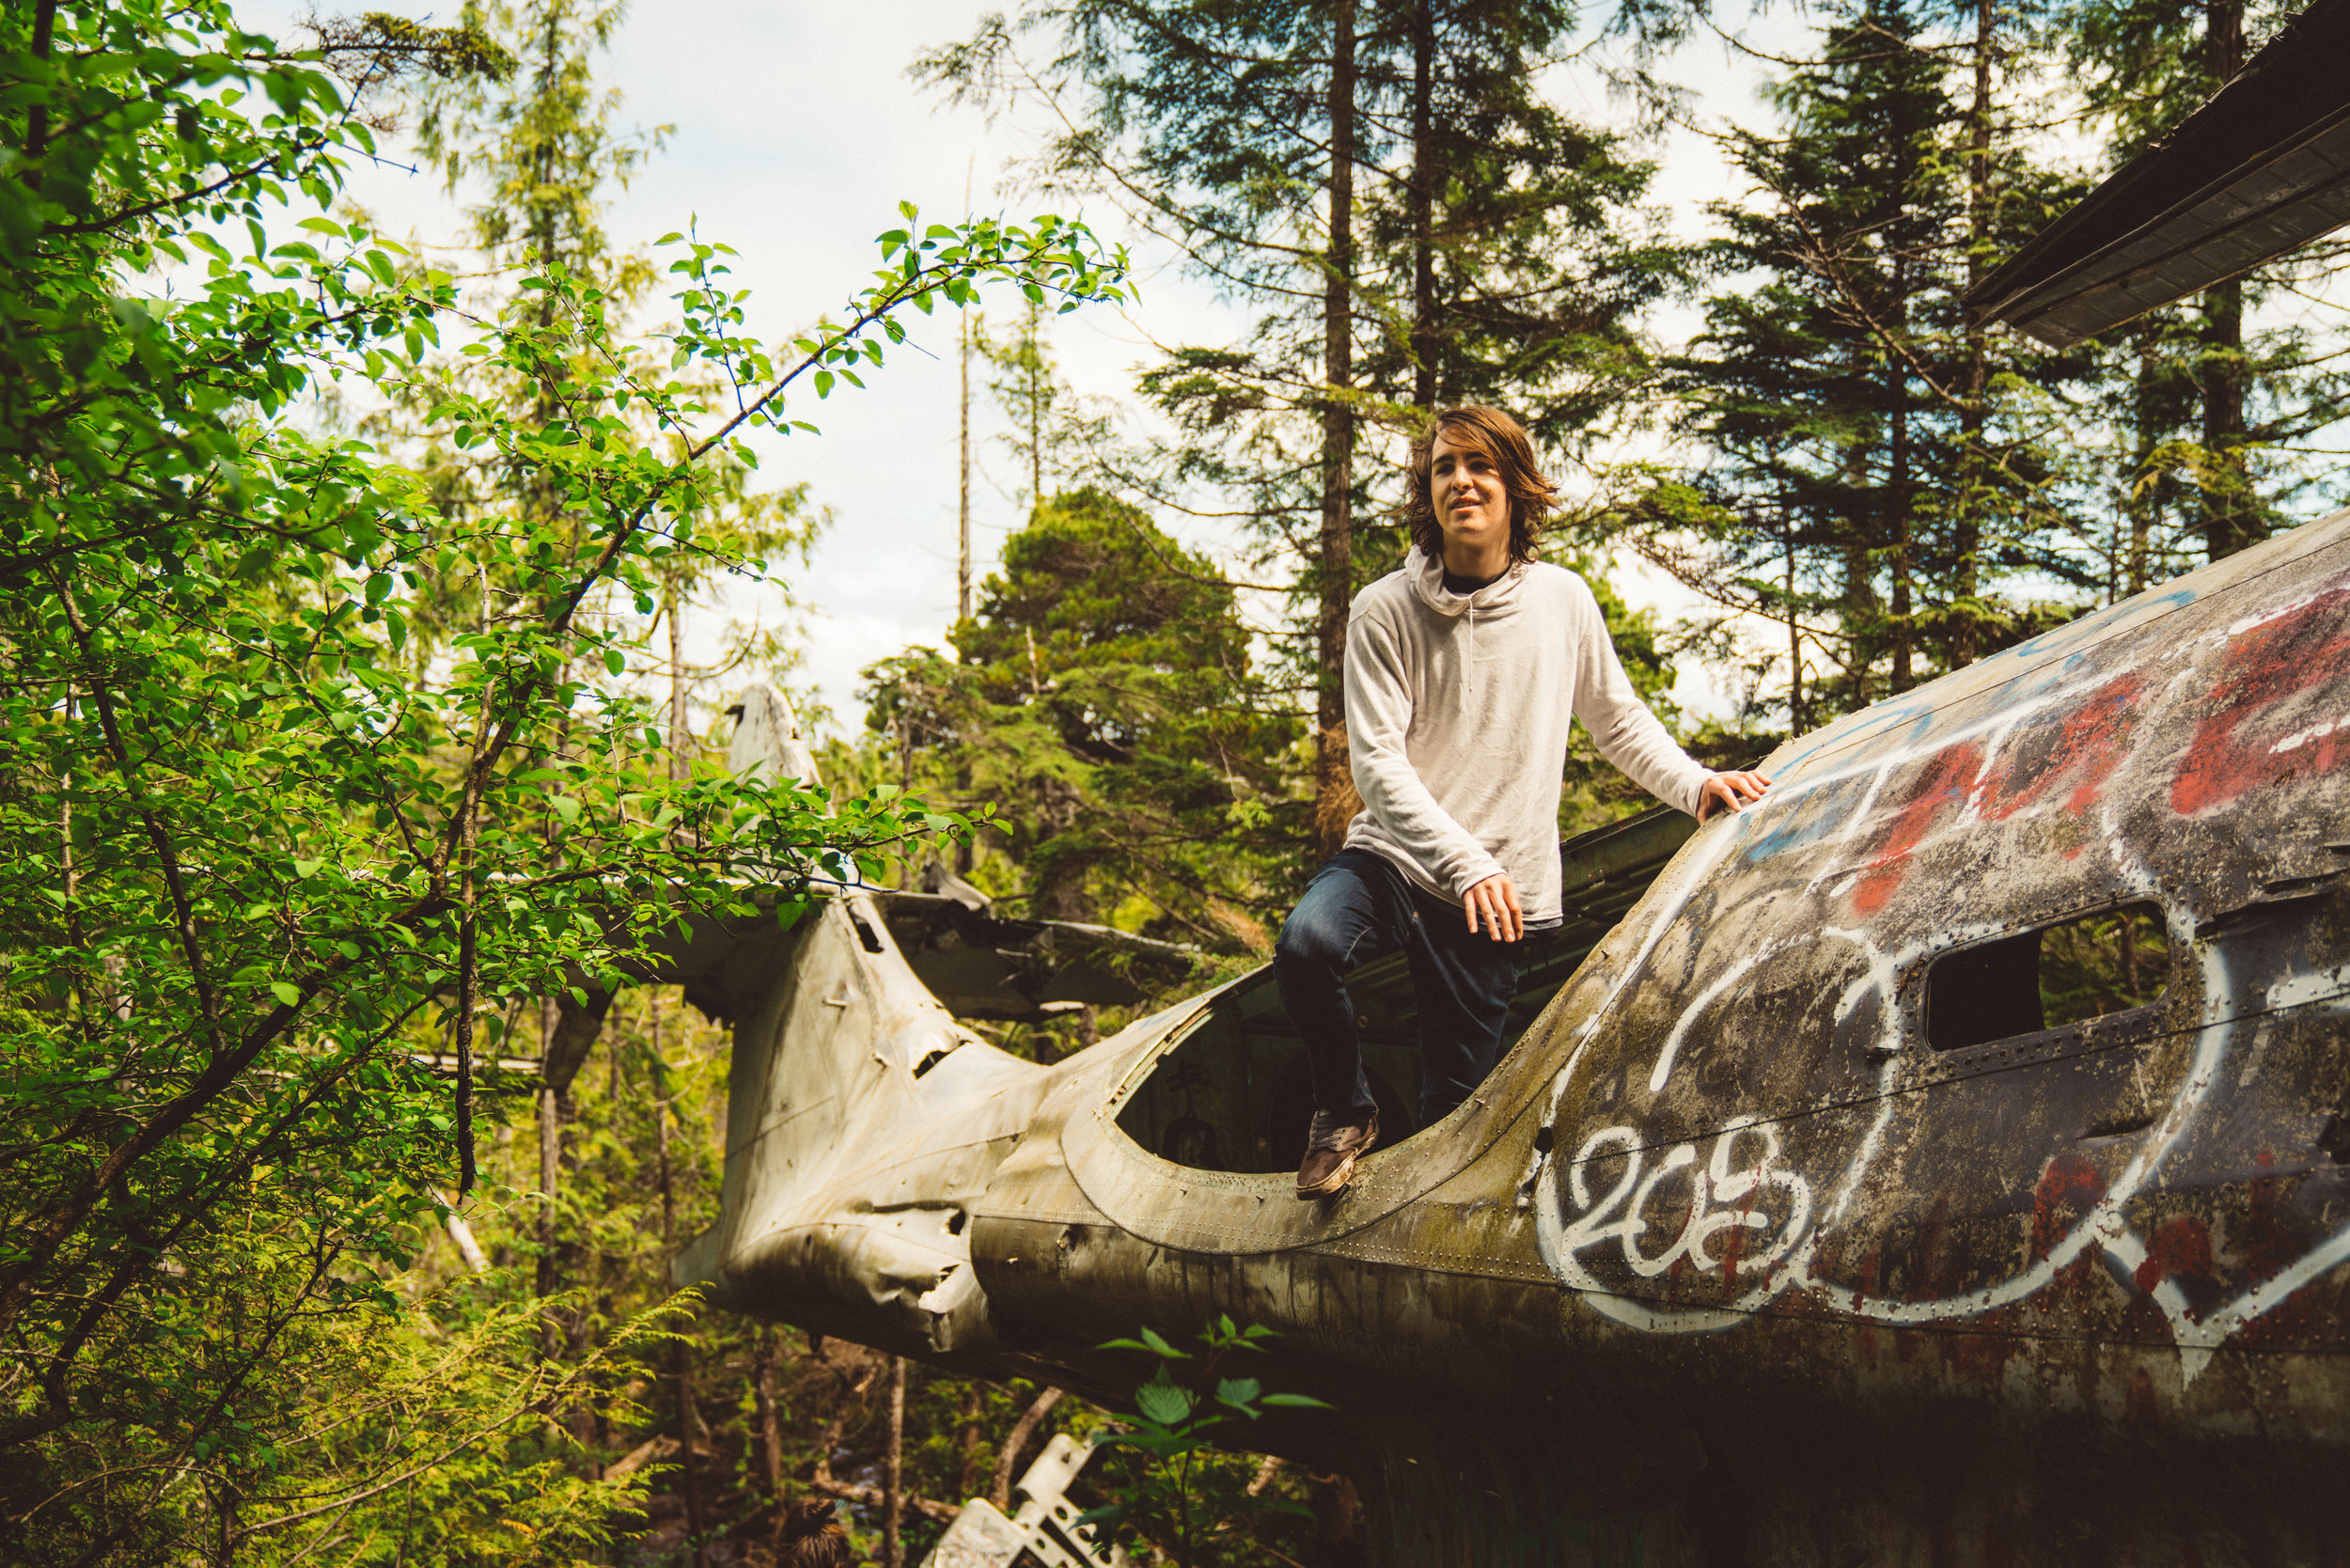 Nolan at the downed plane.